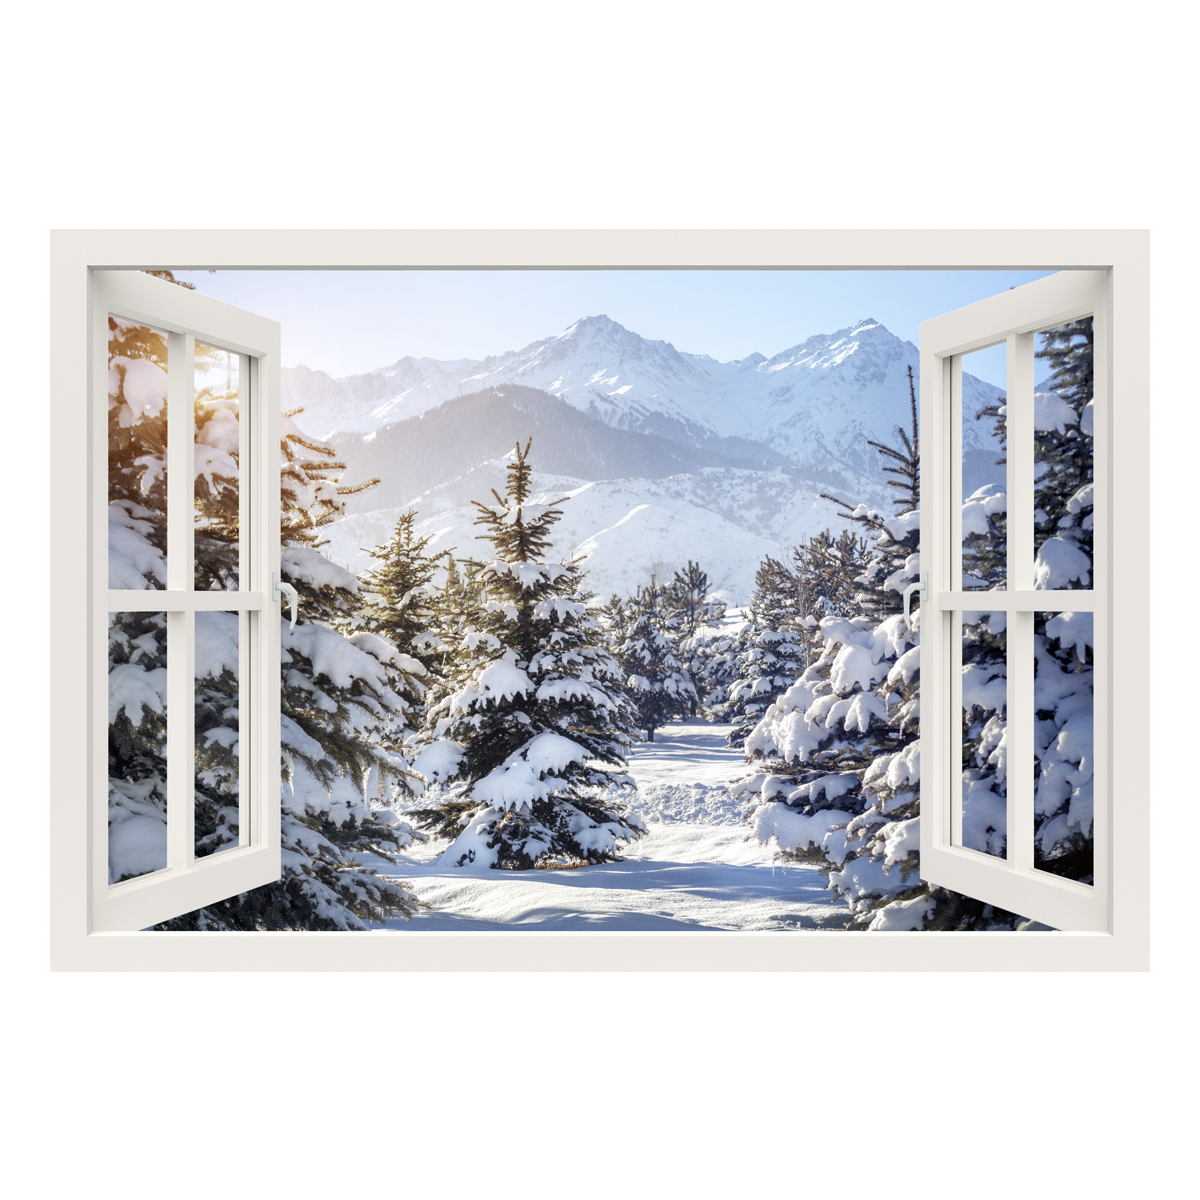 sticker muraux trompe l 39 oeil sticker mural ensoleill hiver montagnes ambiance. Black Bedroom Furniture Sets. Home Design Ideas